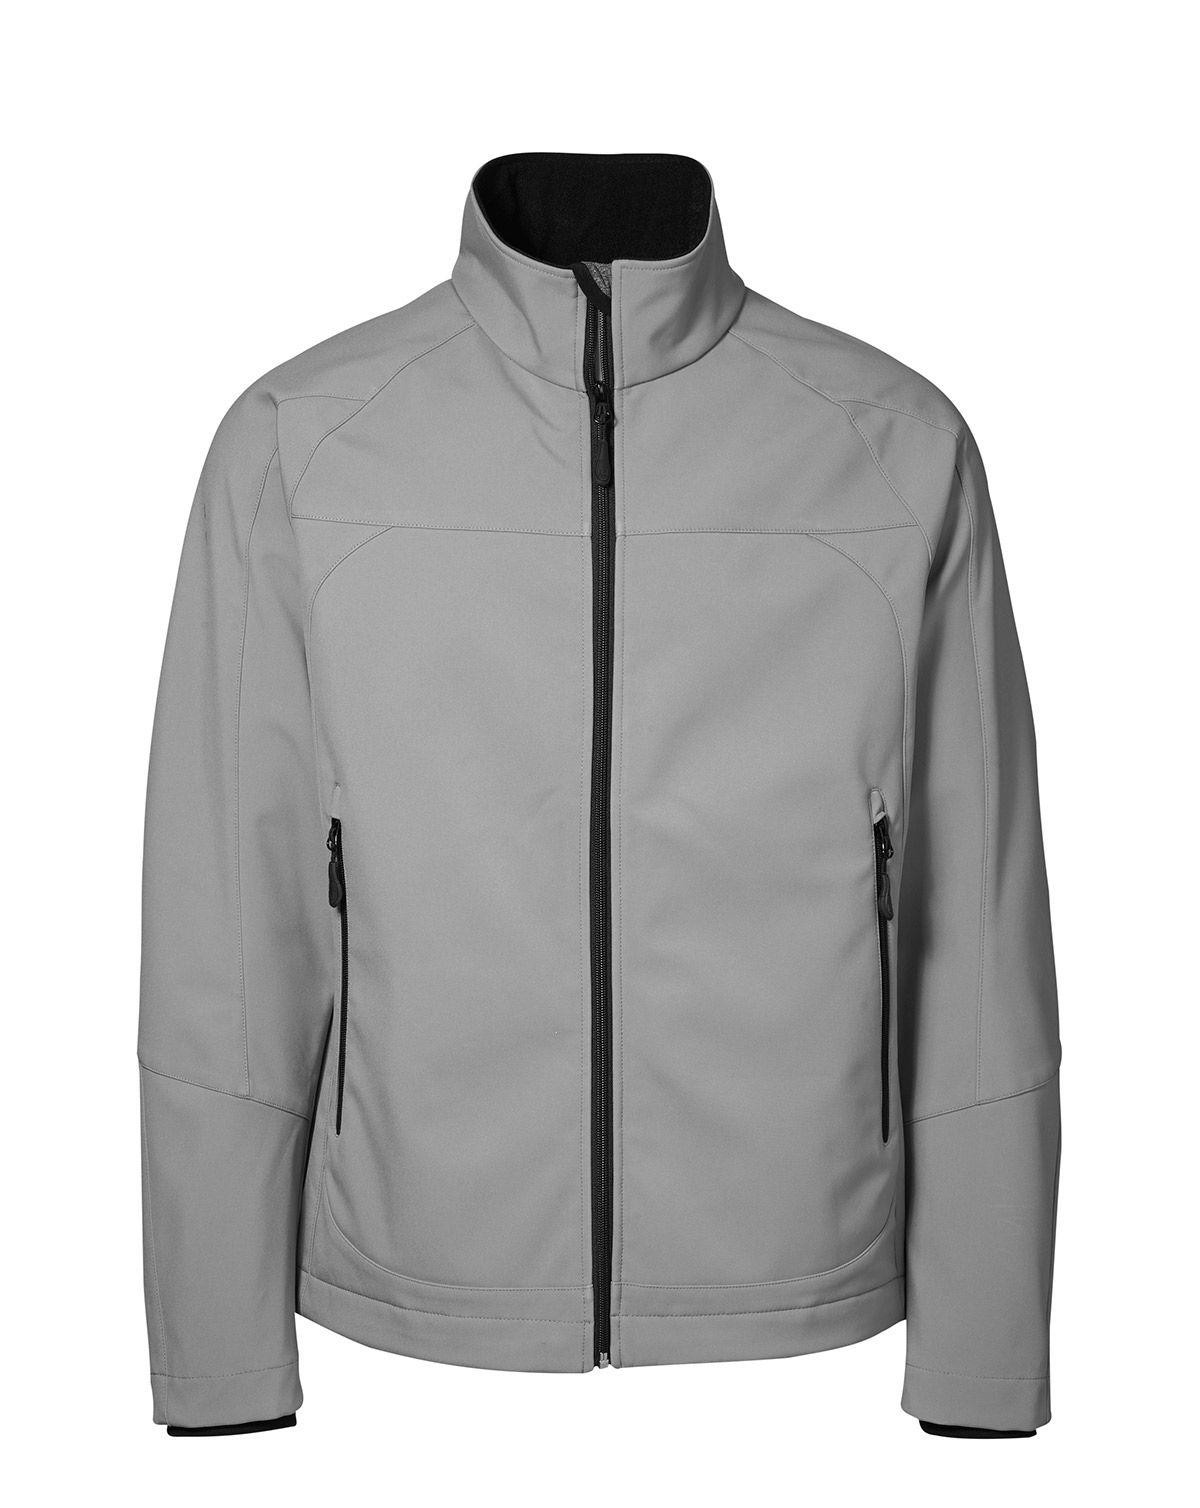 Image of   ID Funktionel Softshell Jakke (Grå, 2XL)